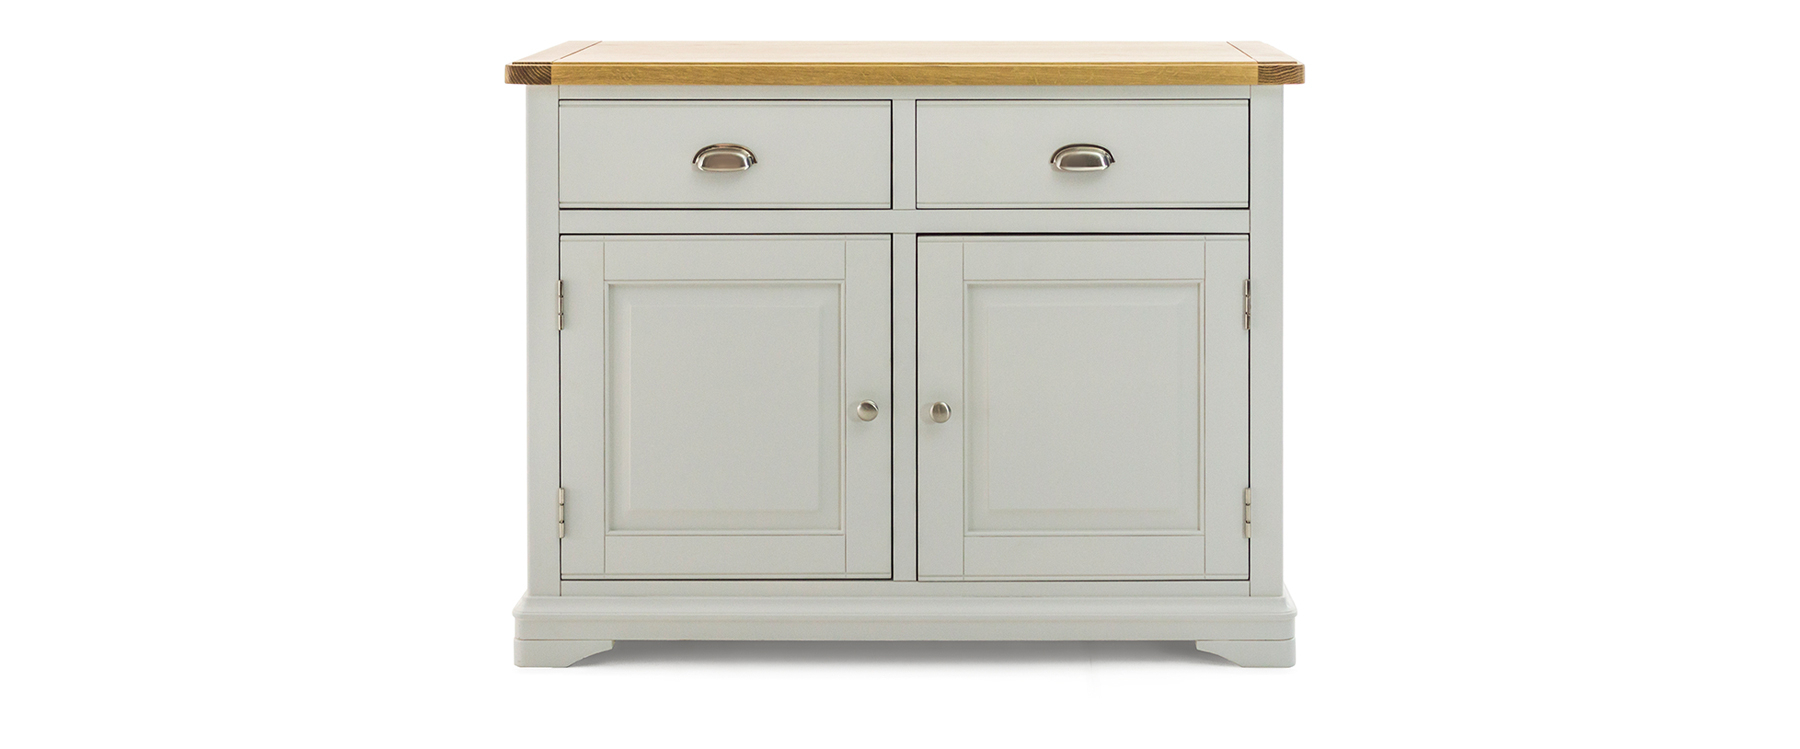 Gorgeous Small Shallow Sideboard Village Room Furniture Inside Annecy Sideboards (Gallery 8 of 20)